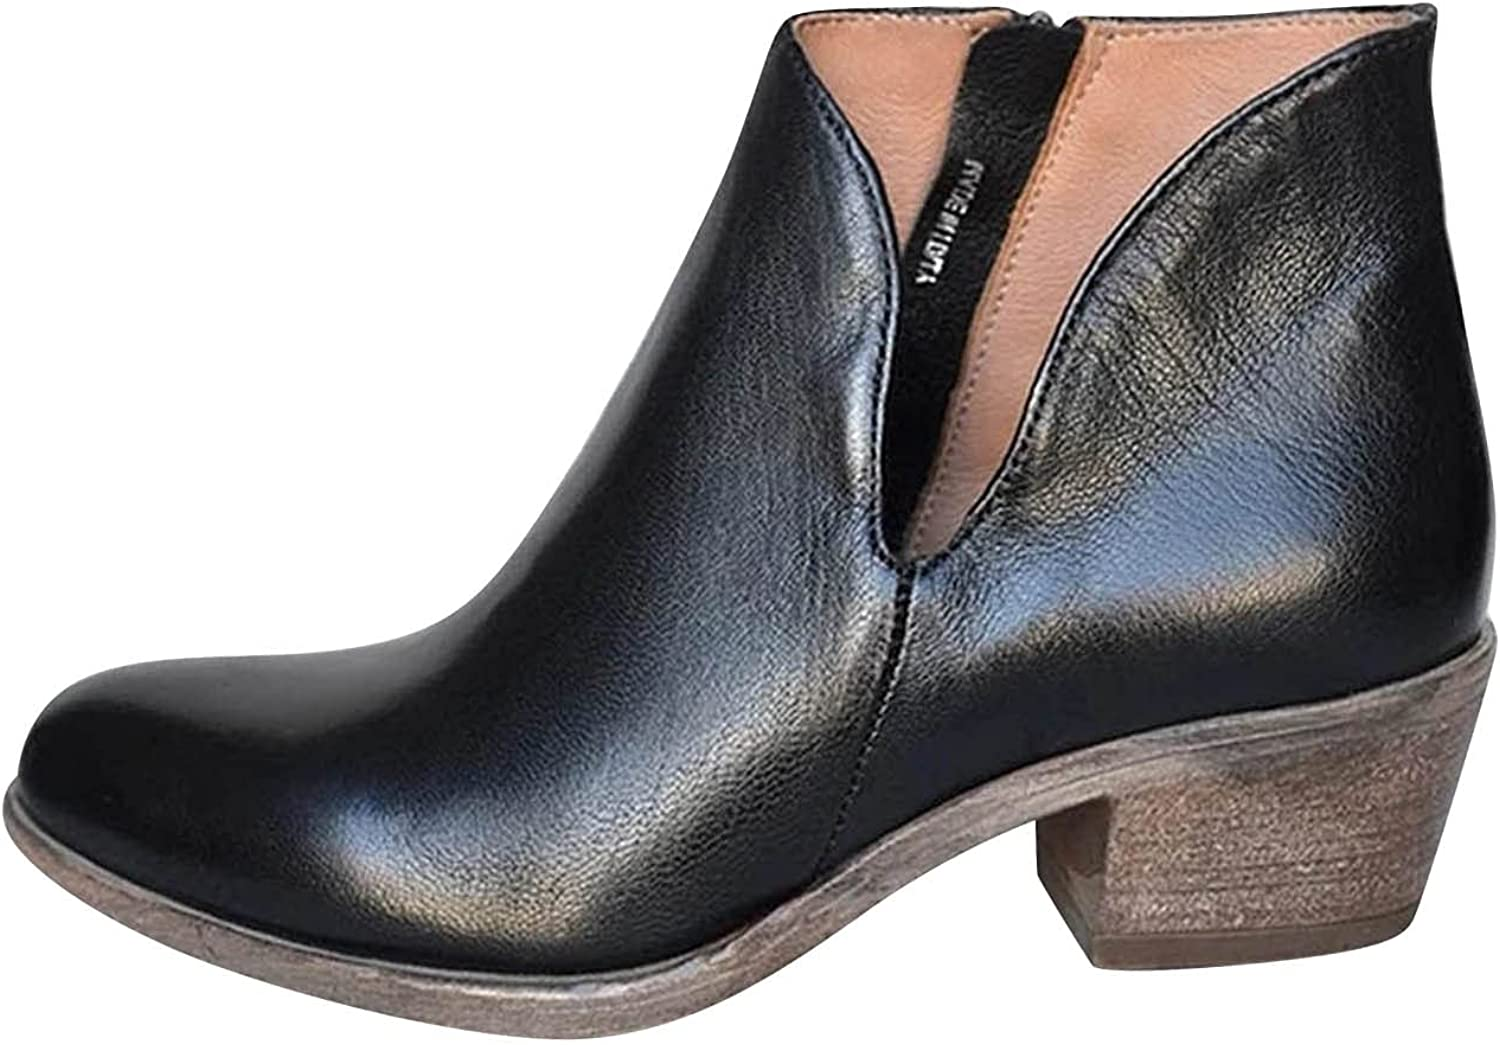 Boots For Women Max 44% OFF Cowgirl Fashion High Shoes Hee Breathable Special price for a limited time Chunky